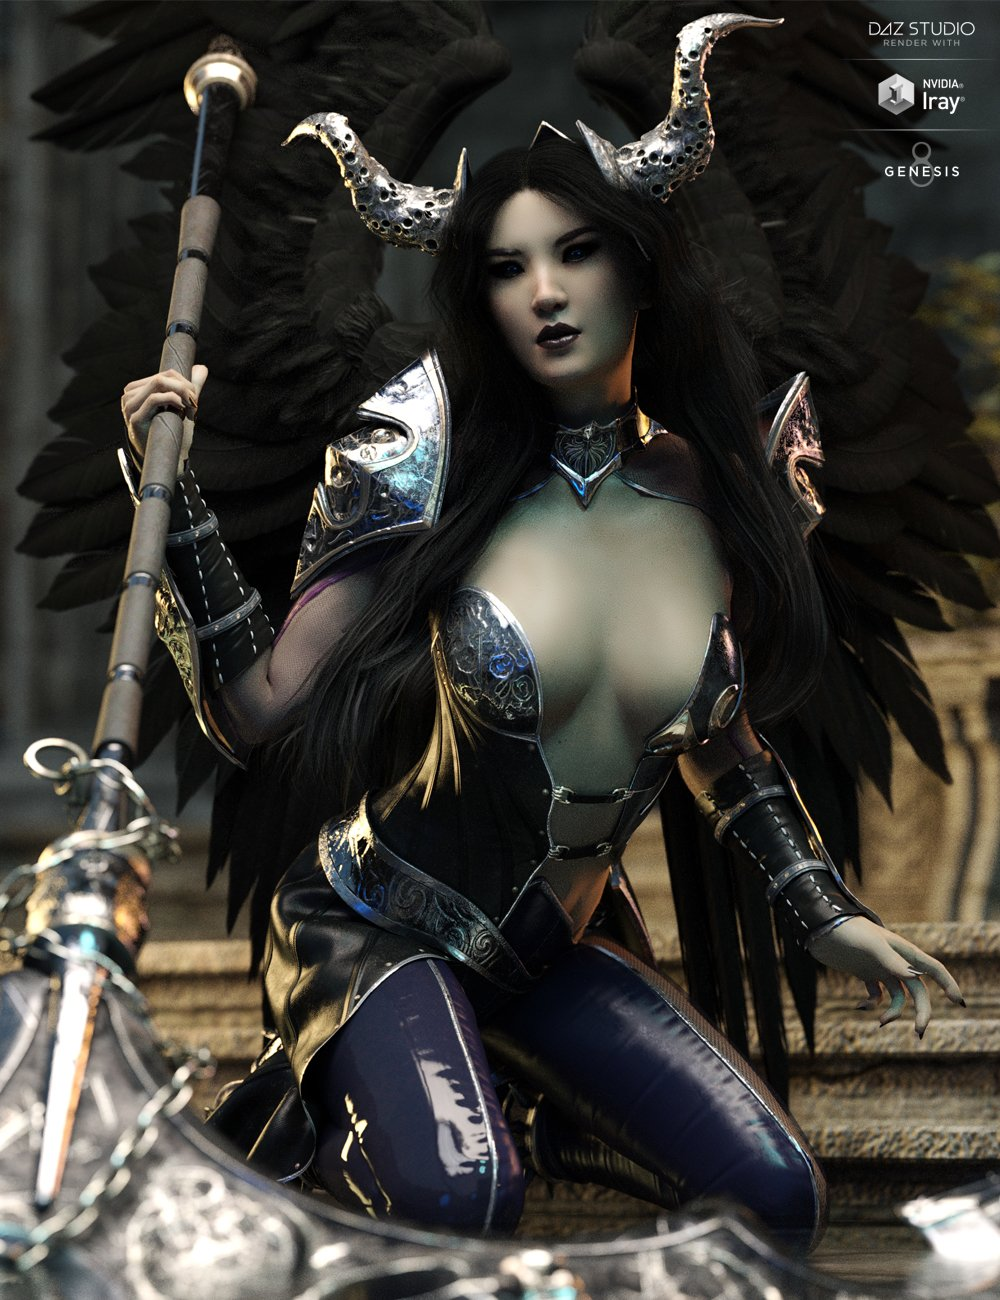 dForce Hellen Outfit and Weapons for Genesis 8 Female(s) by: HM, 3D Models by Daz 3D